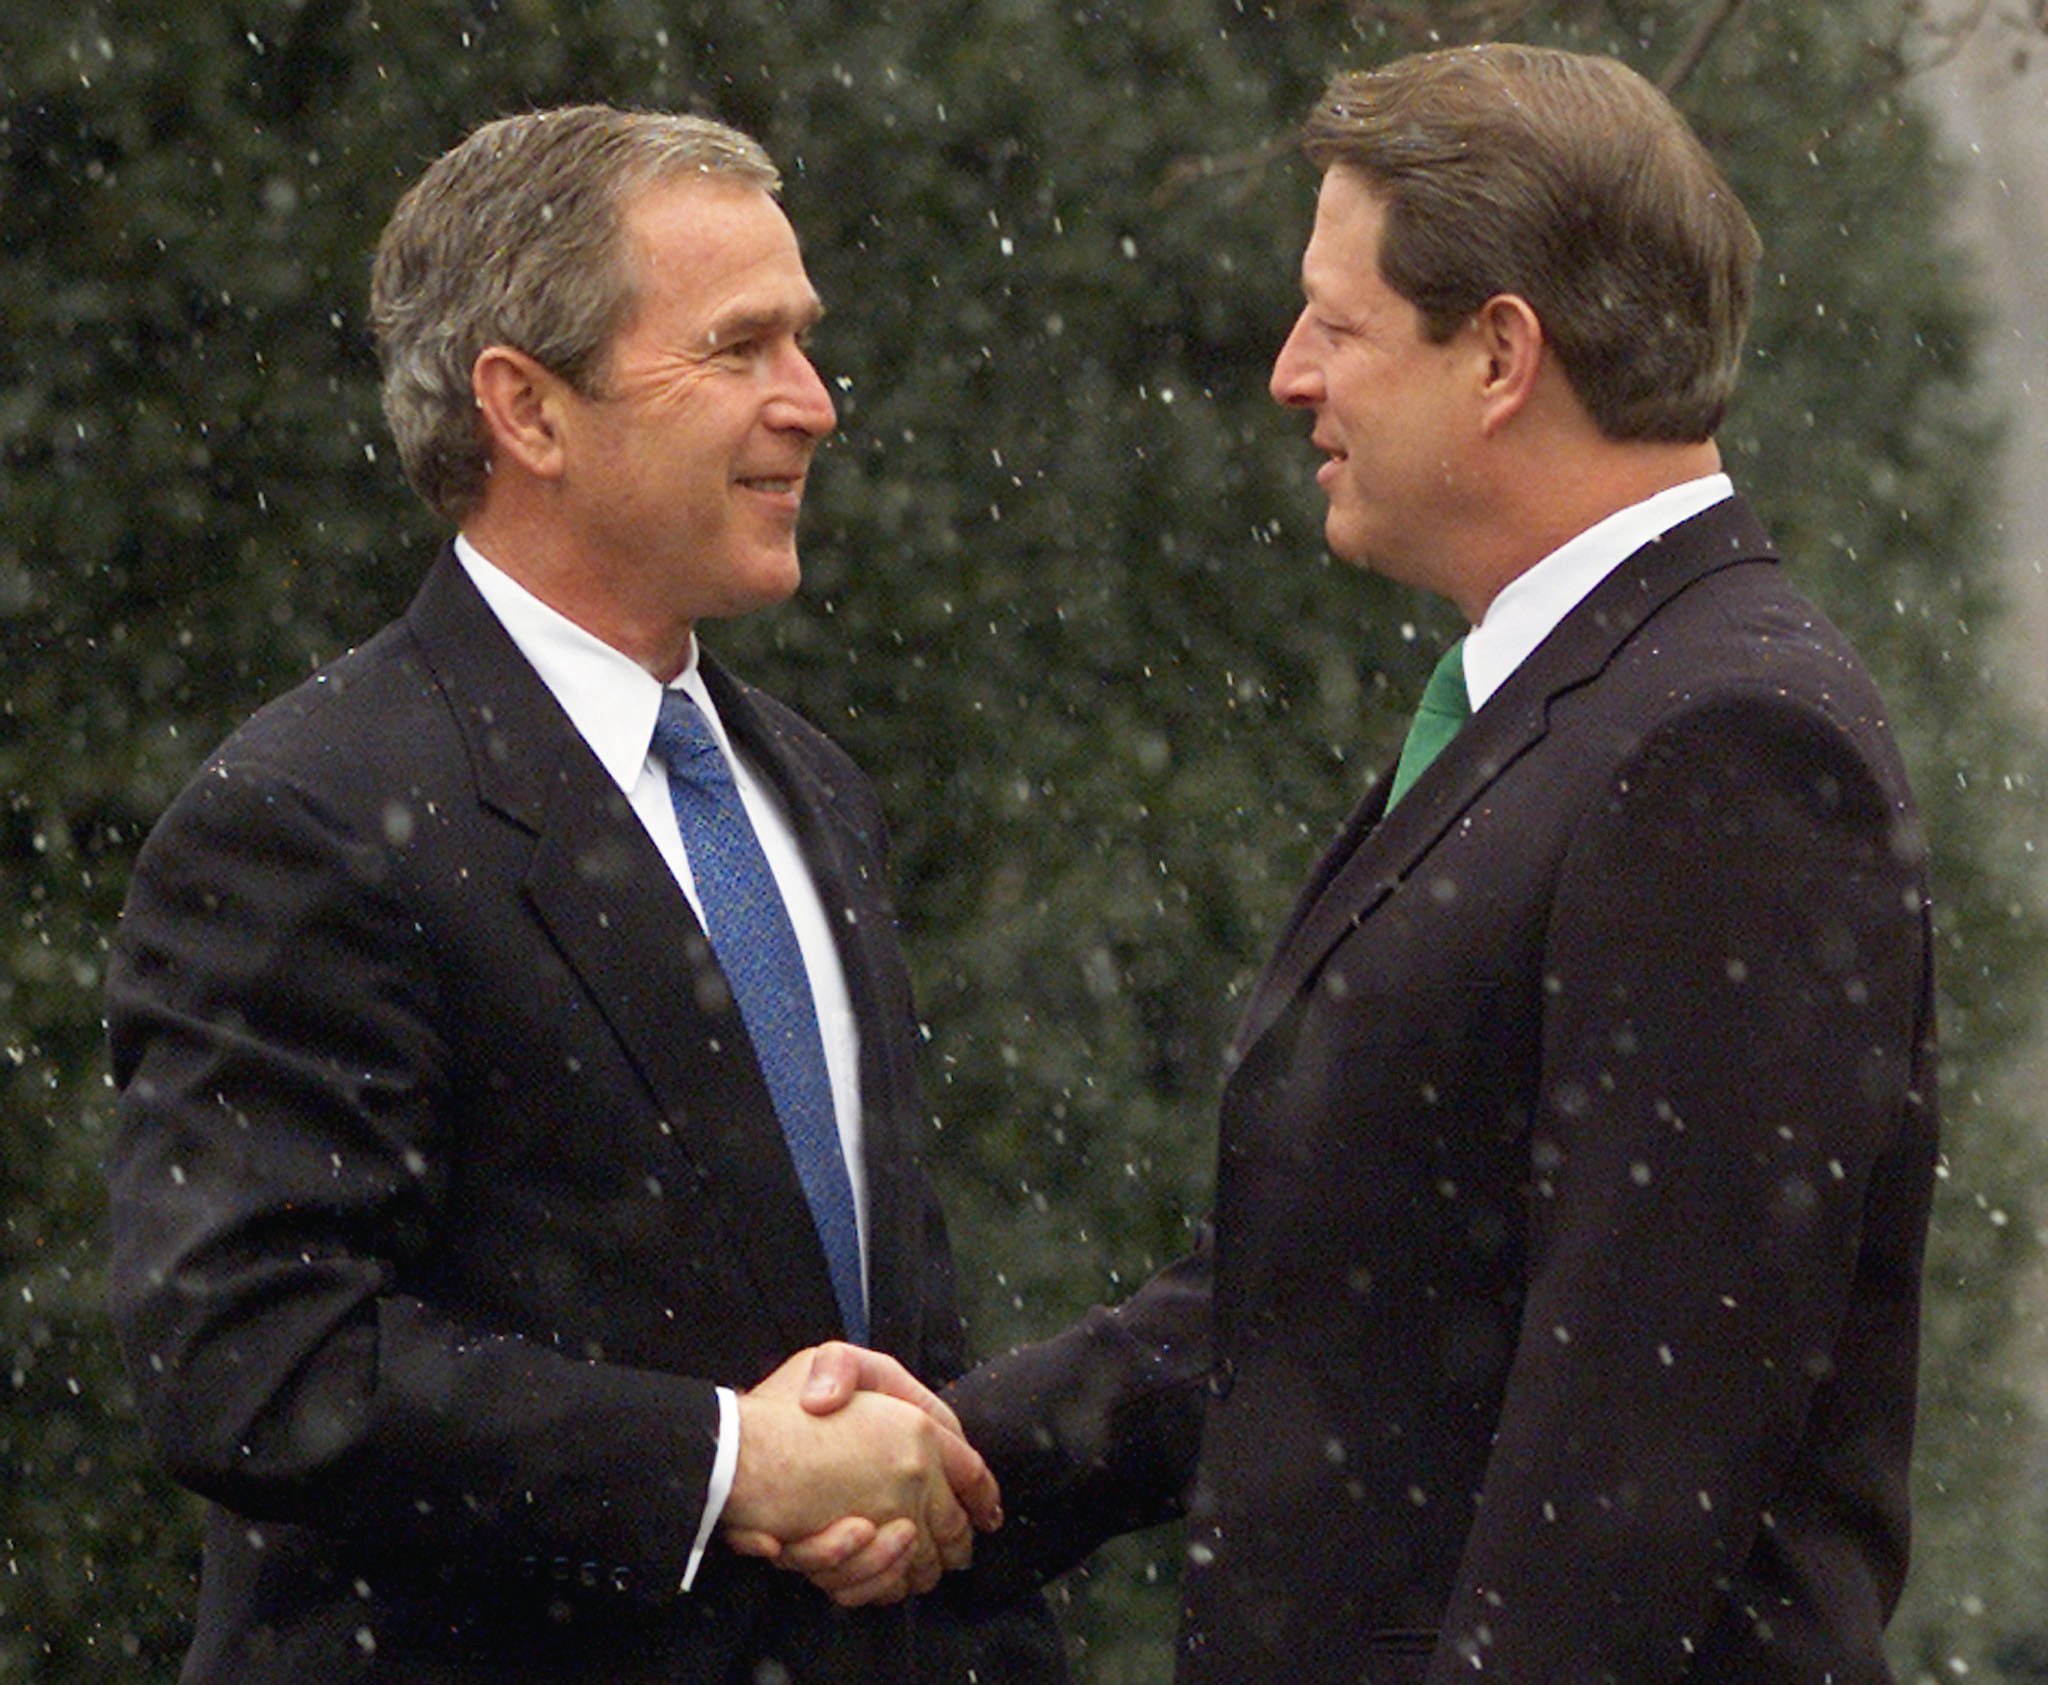 an analysis and a comparison of george w bush and al gore